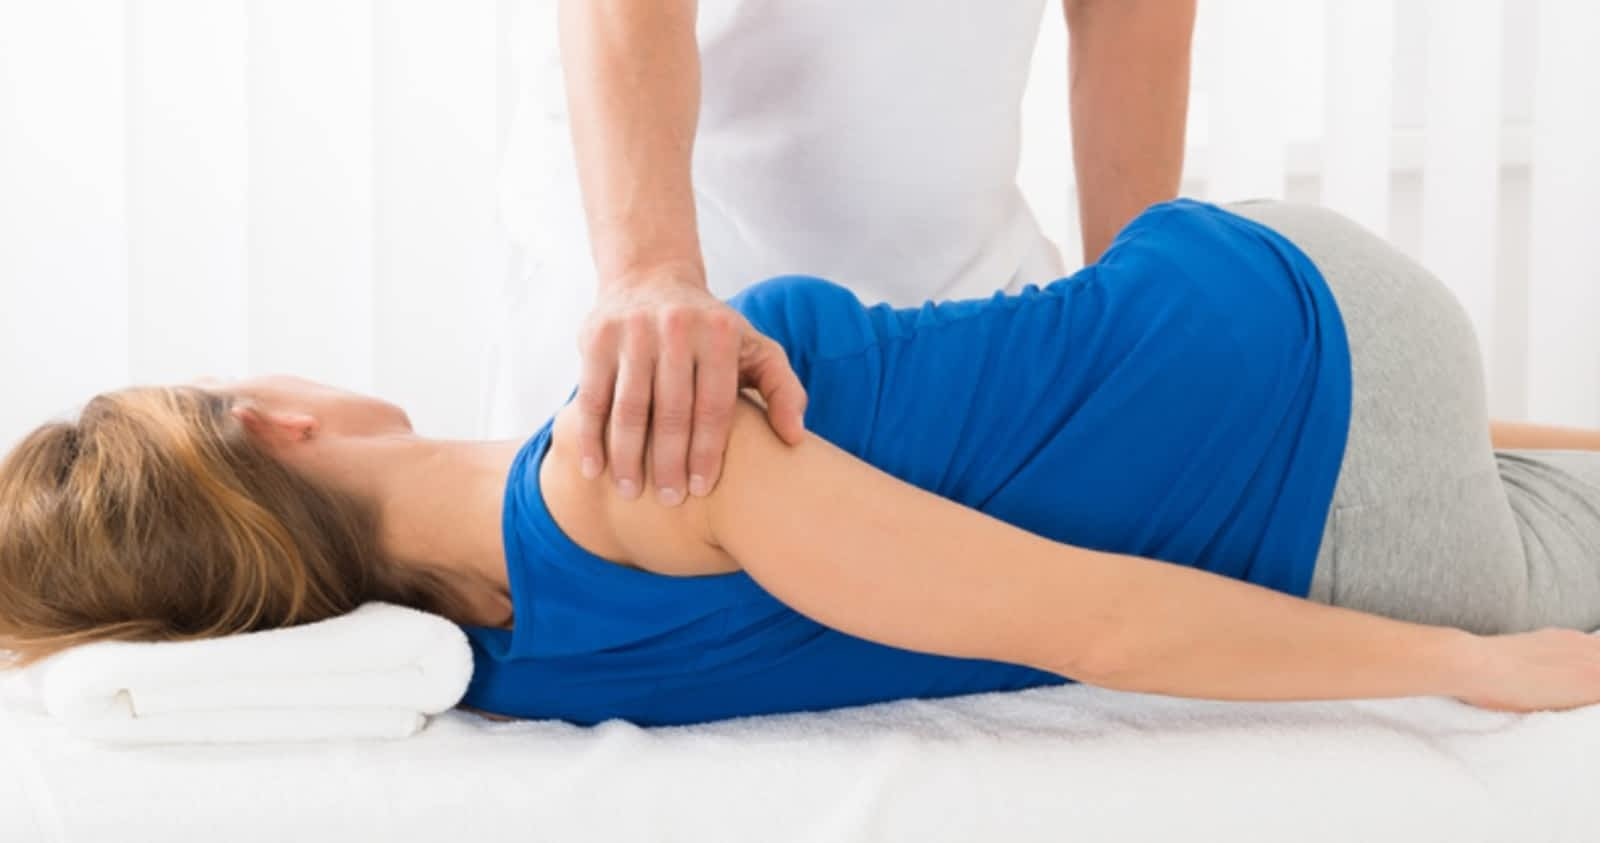 Women undergoing physiotherapy